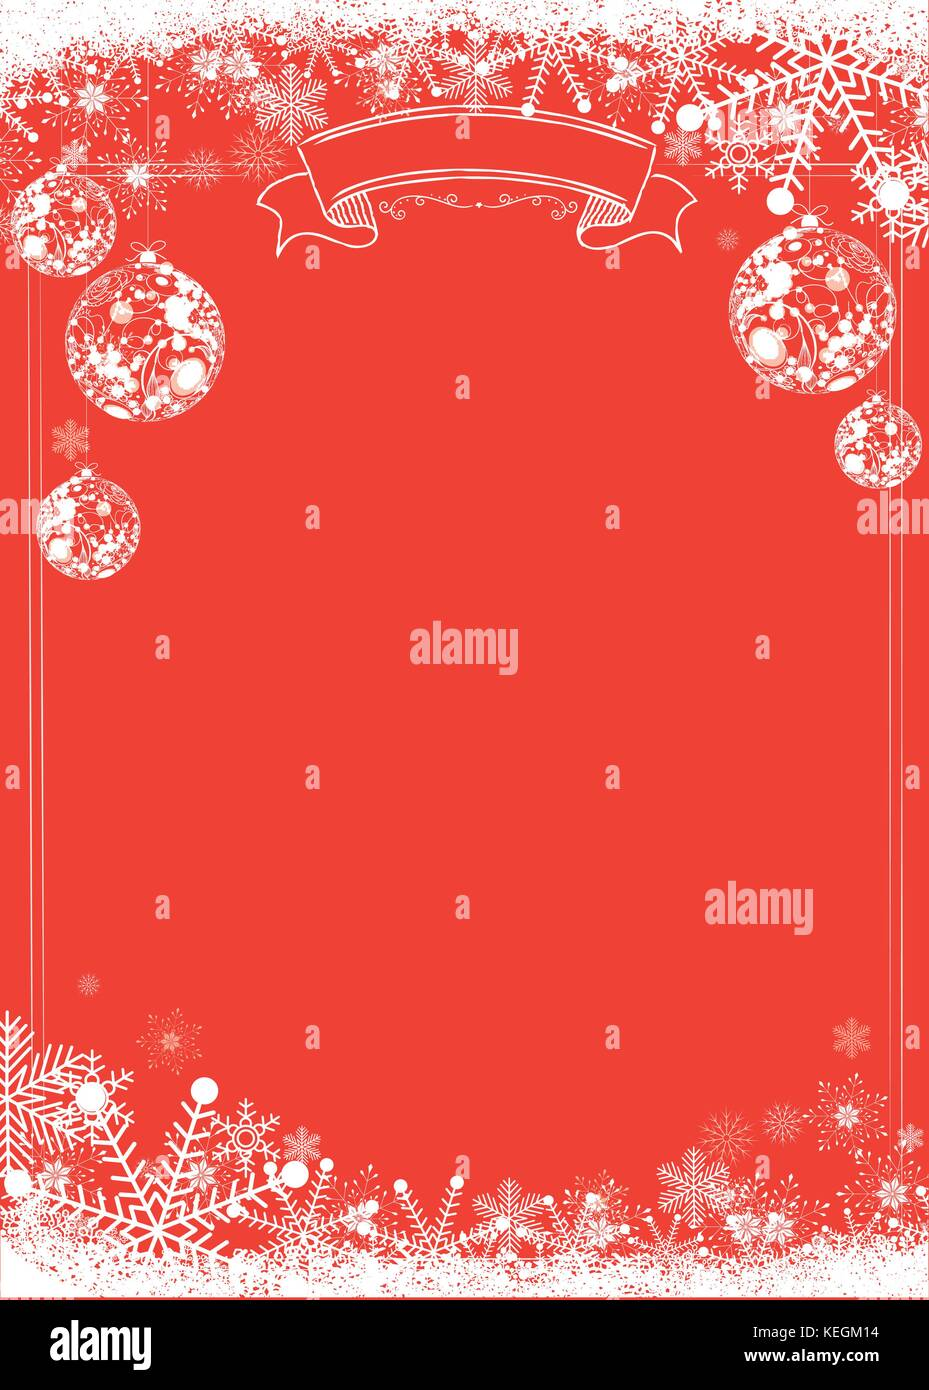 A3 Size Vertical Cafe Menu Classic Winter Christmas Red Background With Xmas Ball And Snowflake Border